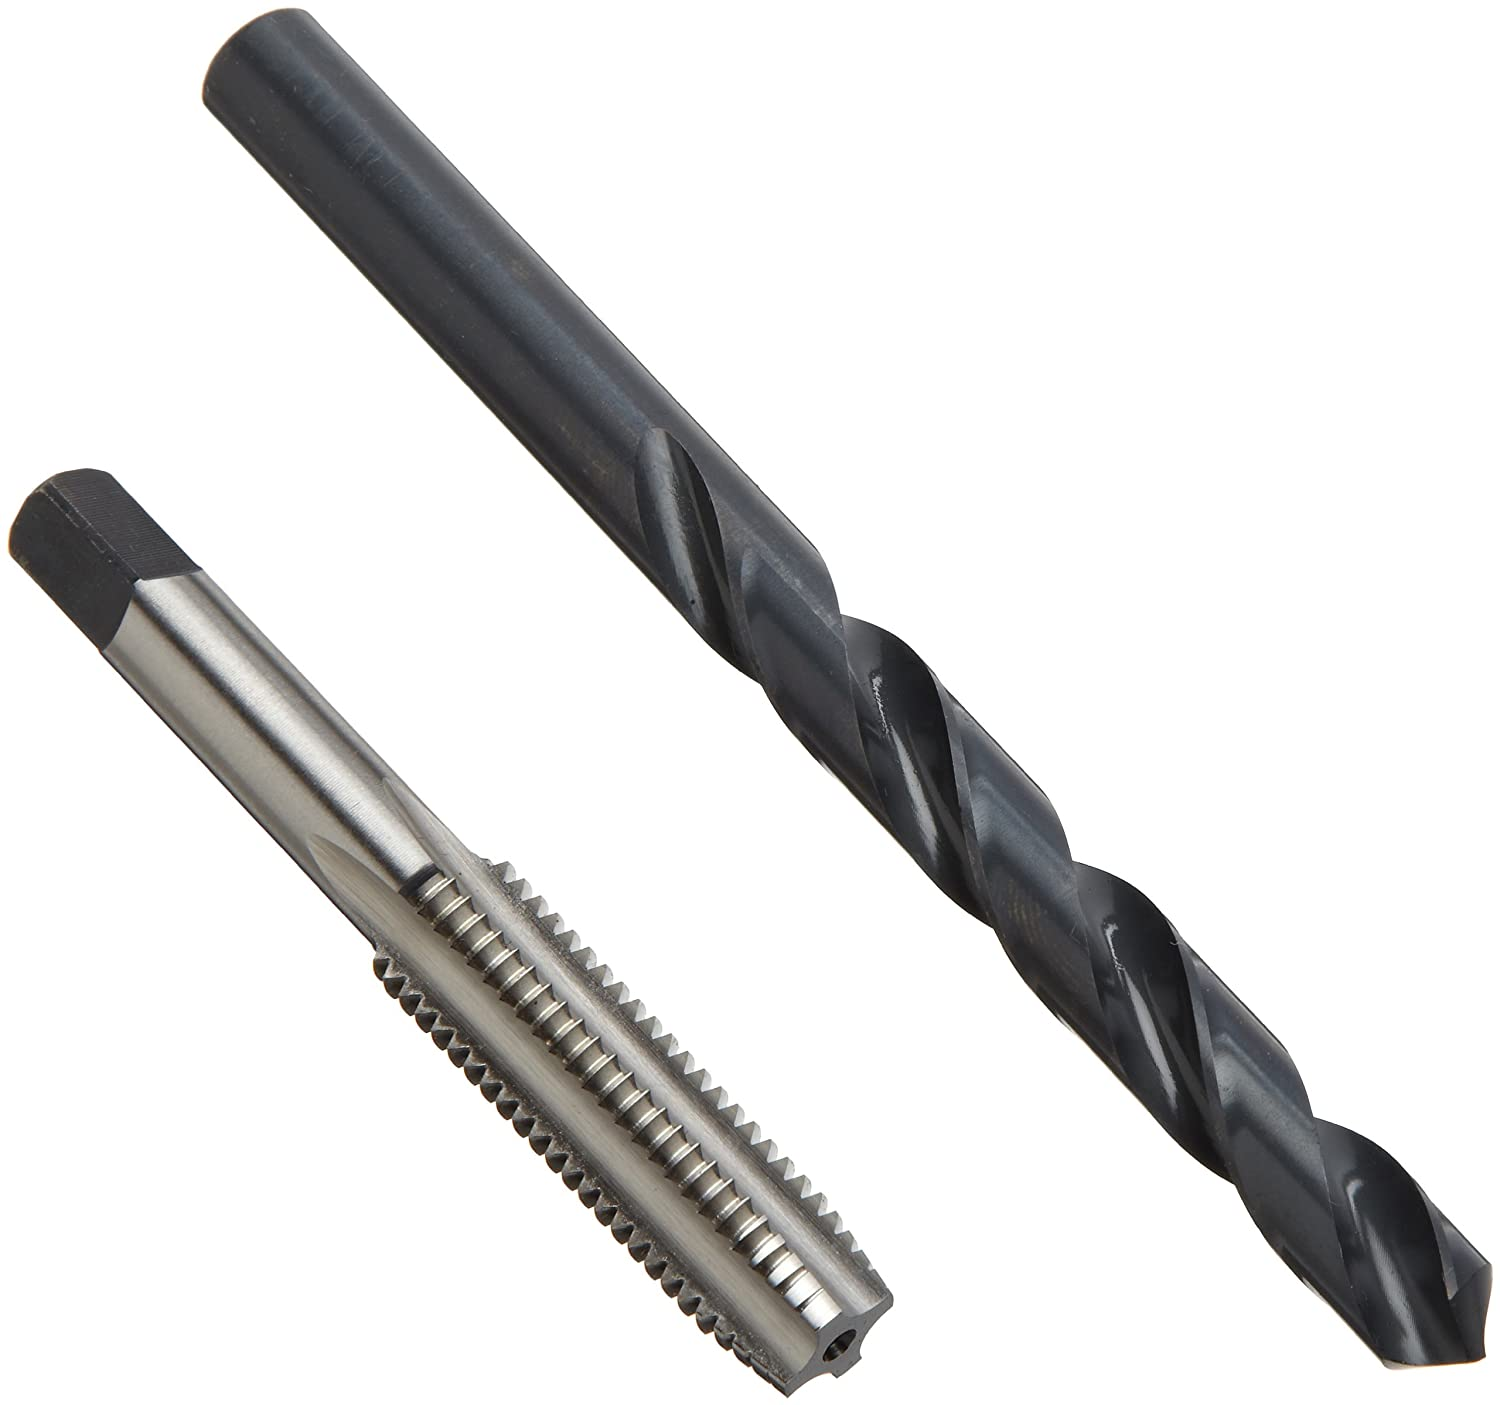 Chicago Latrobe HM18 High-Speed Steel Jobber Length Drill Bit and Tap Set with Metal Case, Black Oxide Drill Bits/Uncoated Taps, Metric, 18-piece, Metric Drill Bit Sizes, M2.5 to M12 Tap Sizes Greenfield 52541